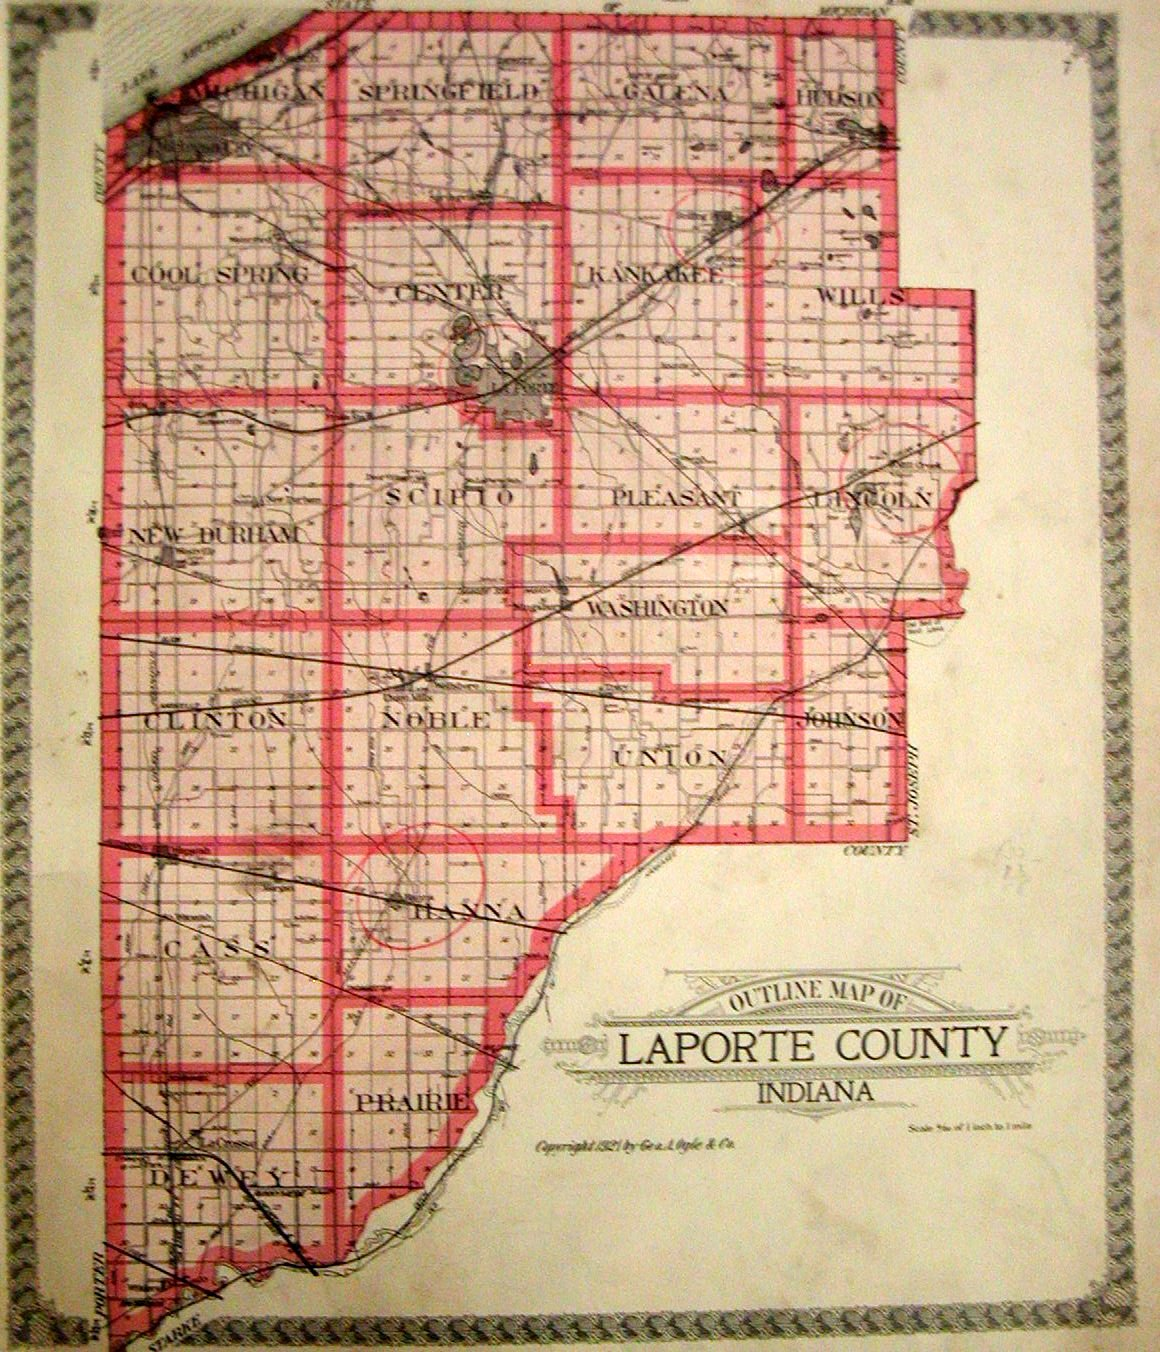 All Township 1921 maps